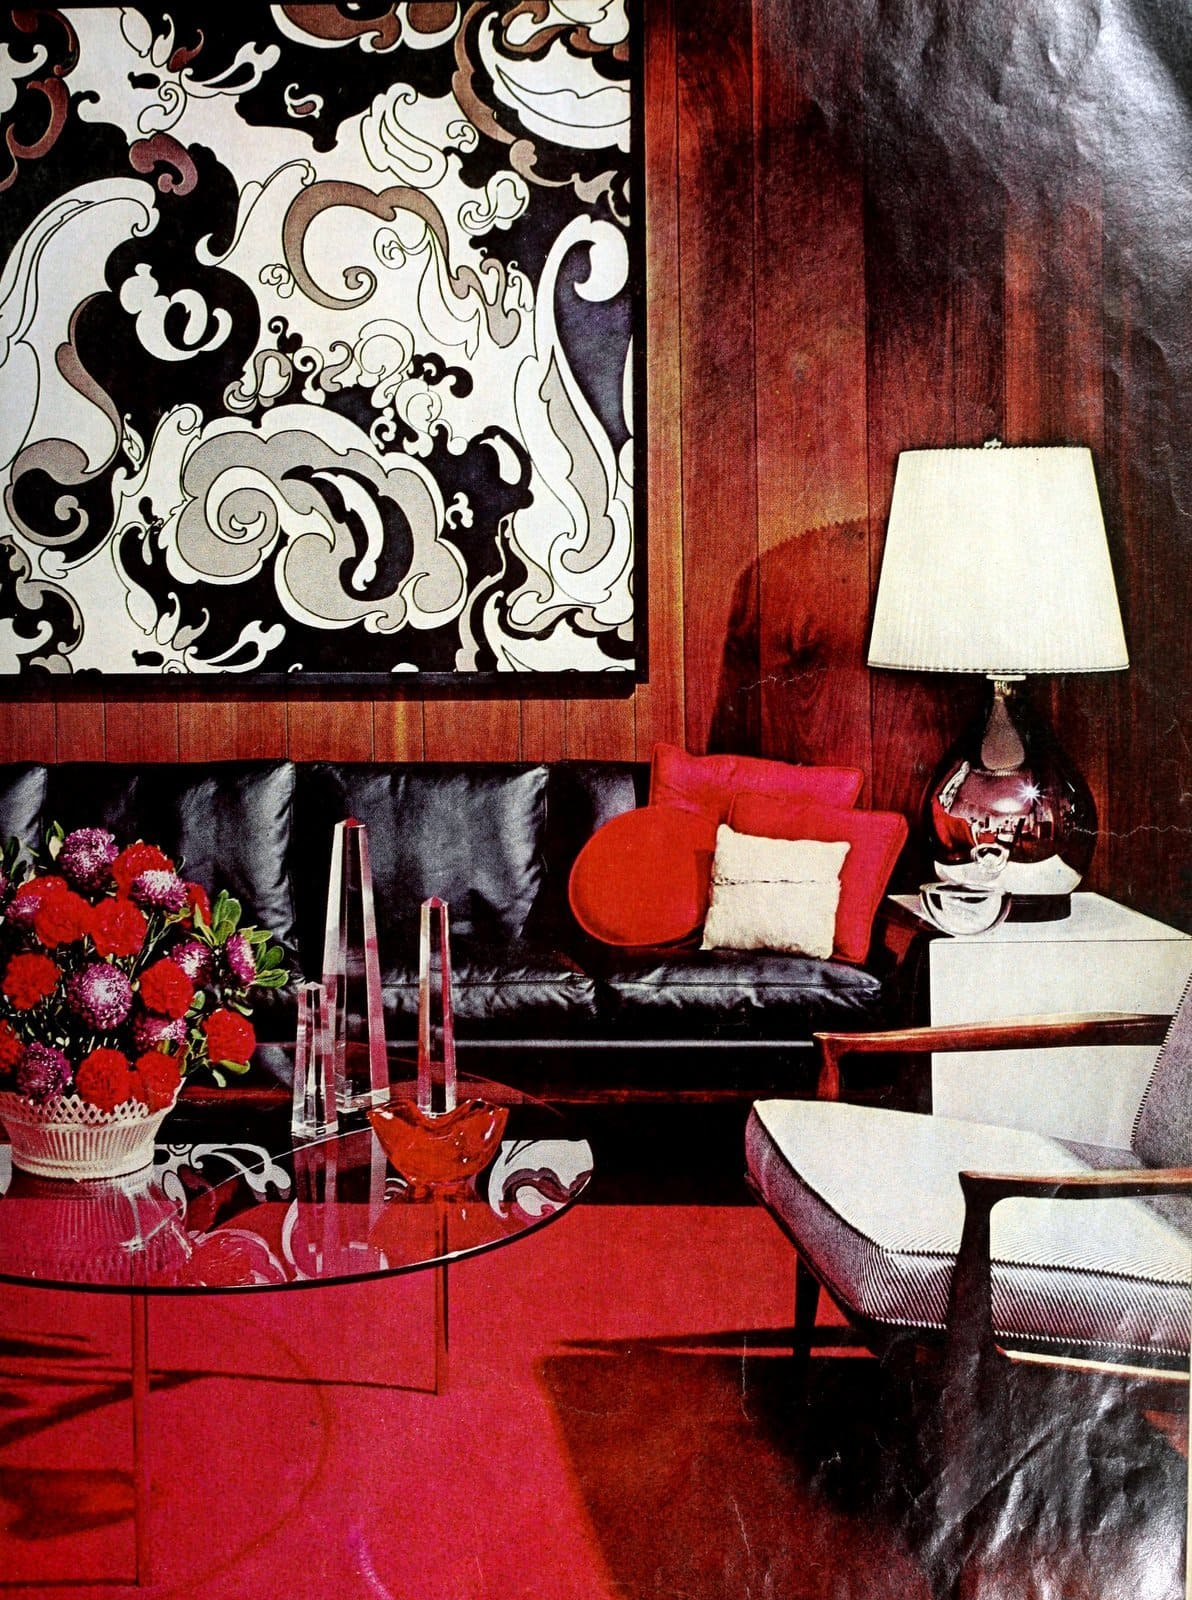 Vintage living room decorating in red with black and white